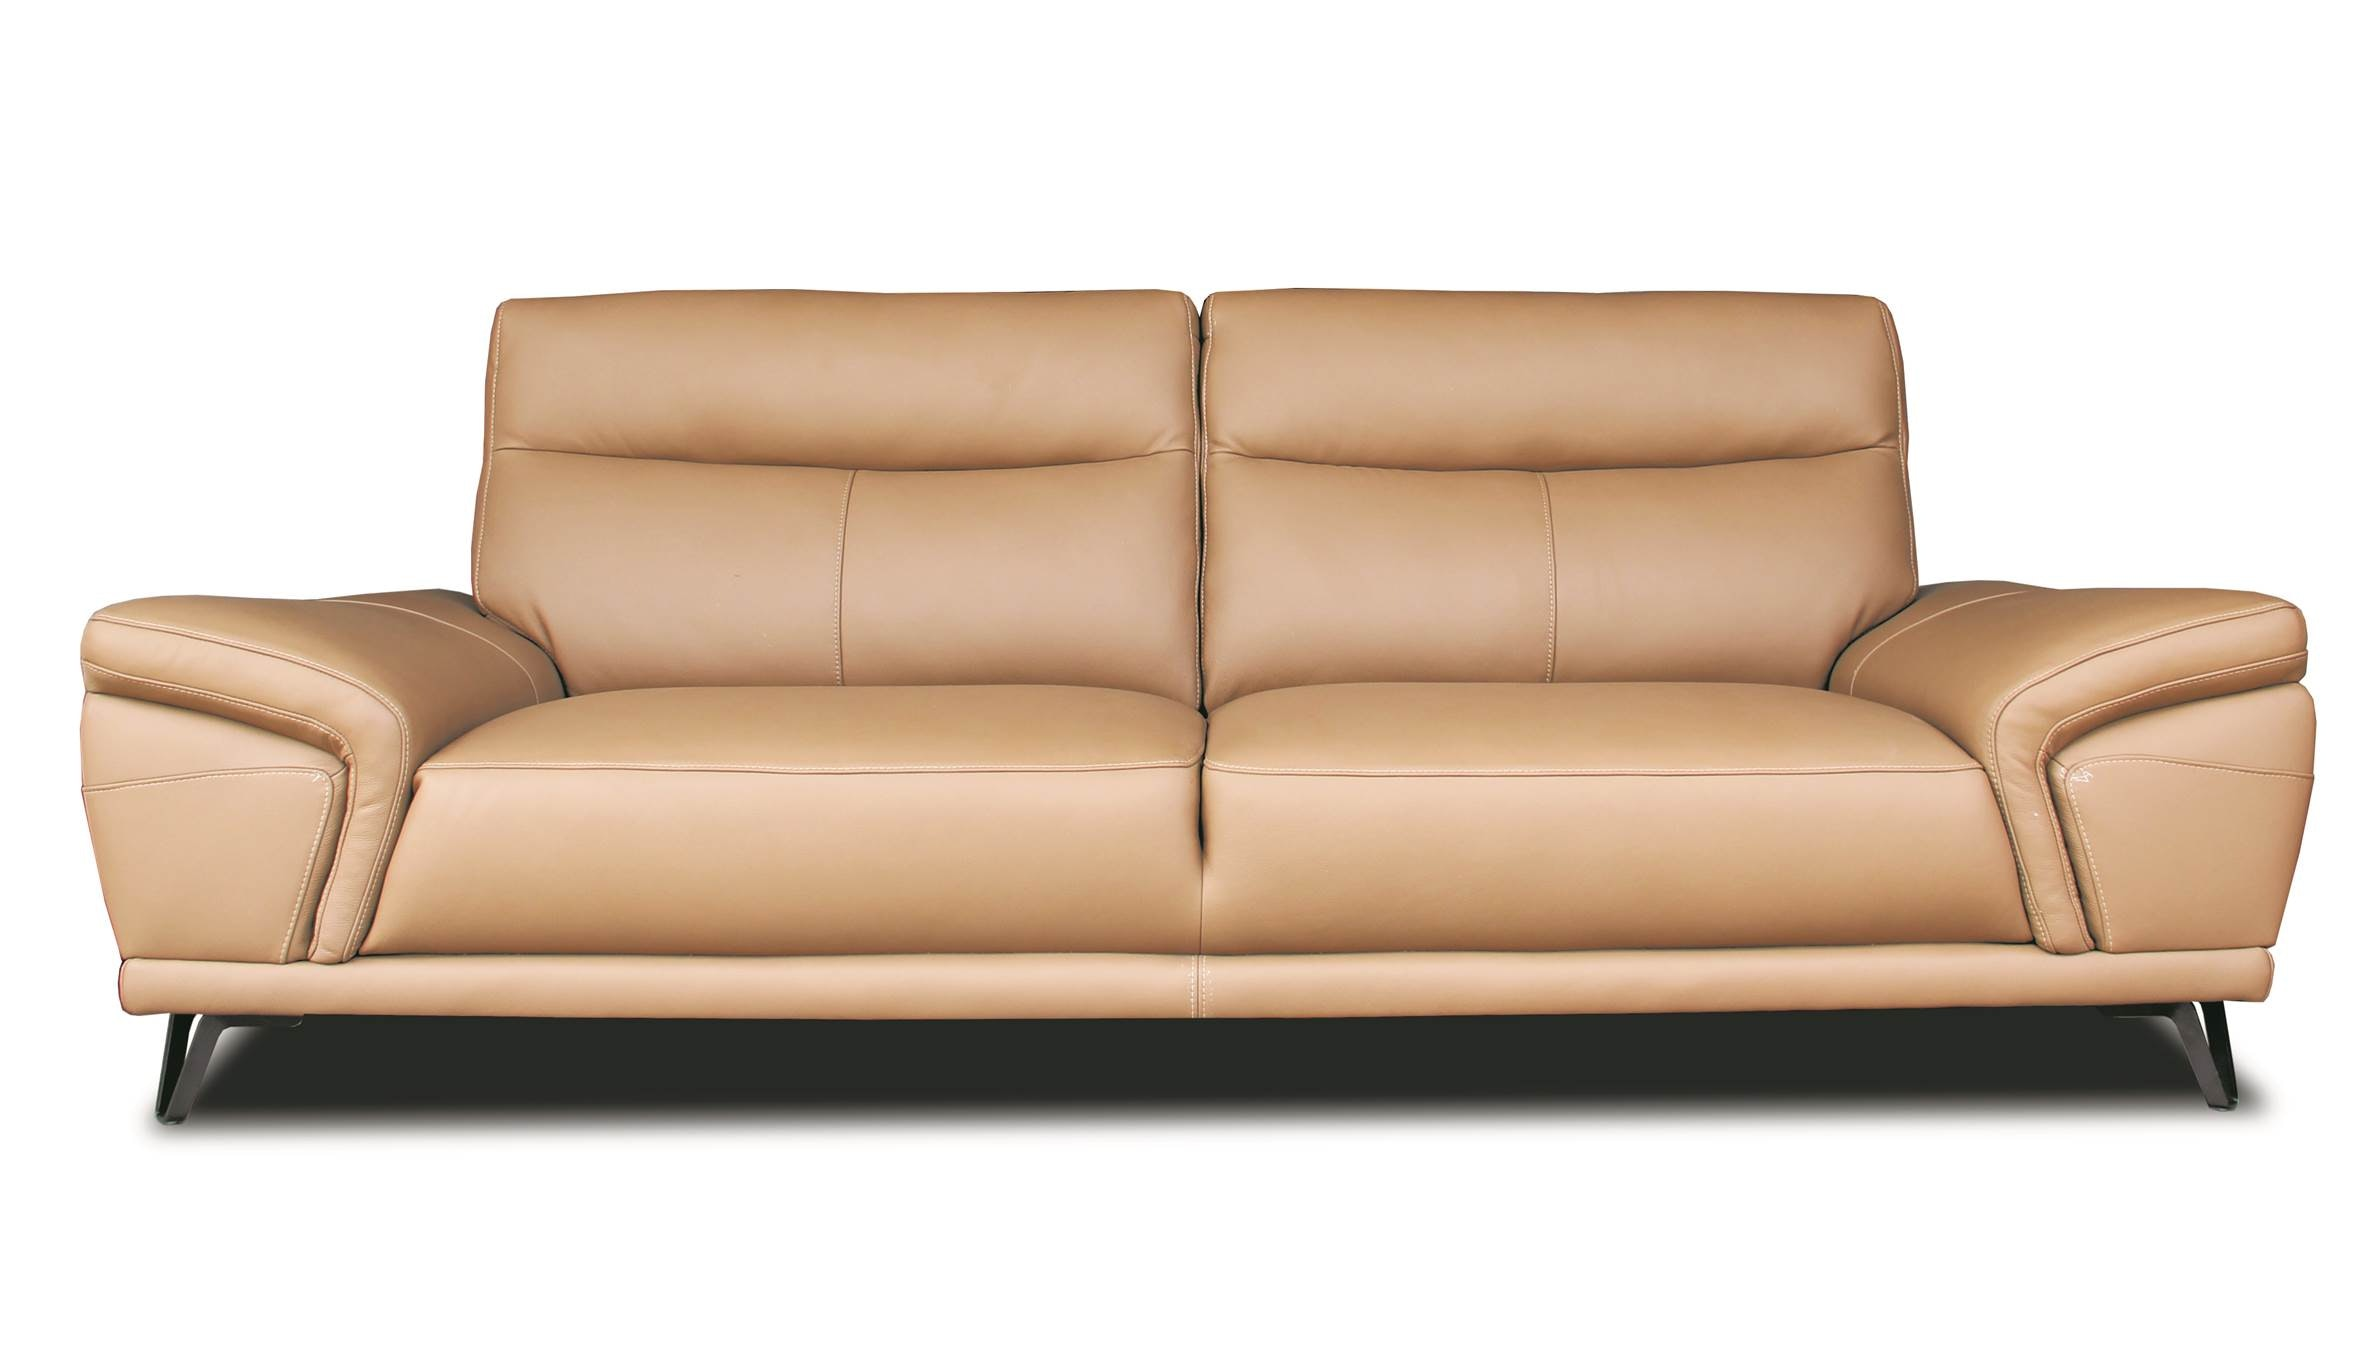 Hilker Kingdom 3-Seater Leather Sofa  sc 1 st  Harvey Norman : chaise lounge singapore - Sectionals, Sofas & Couches